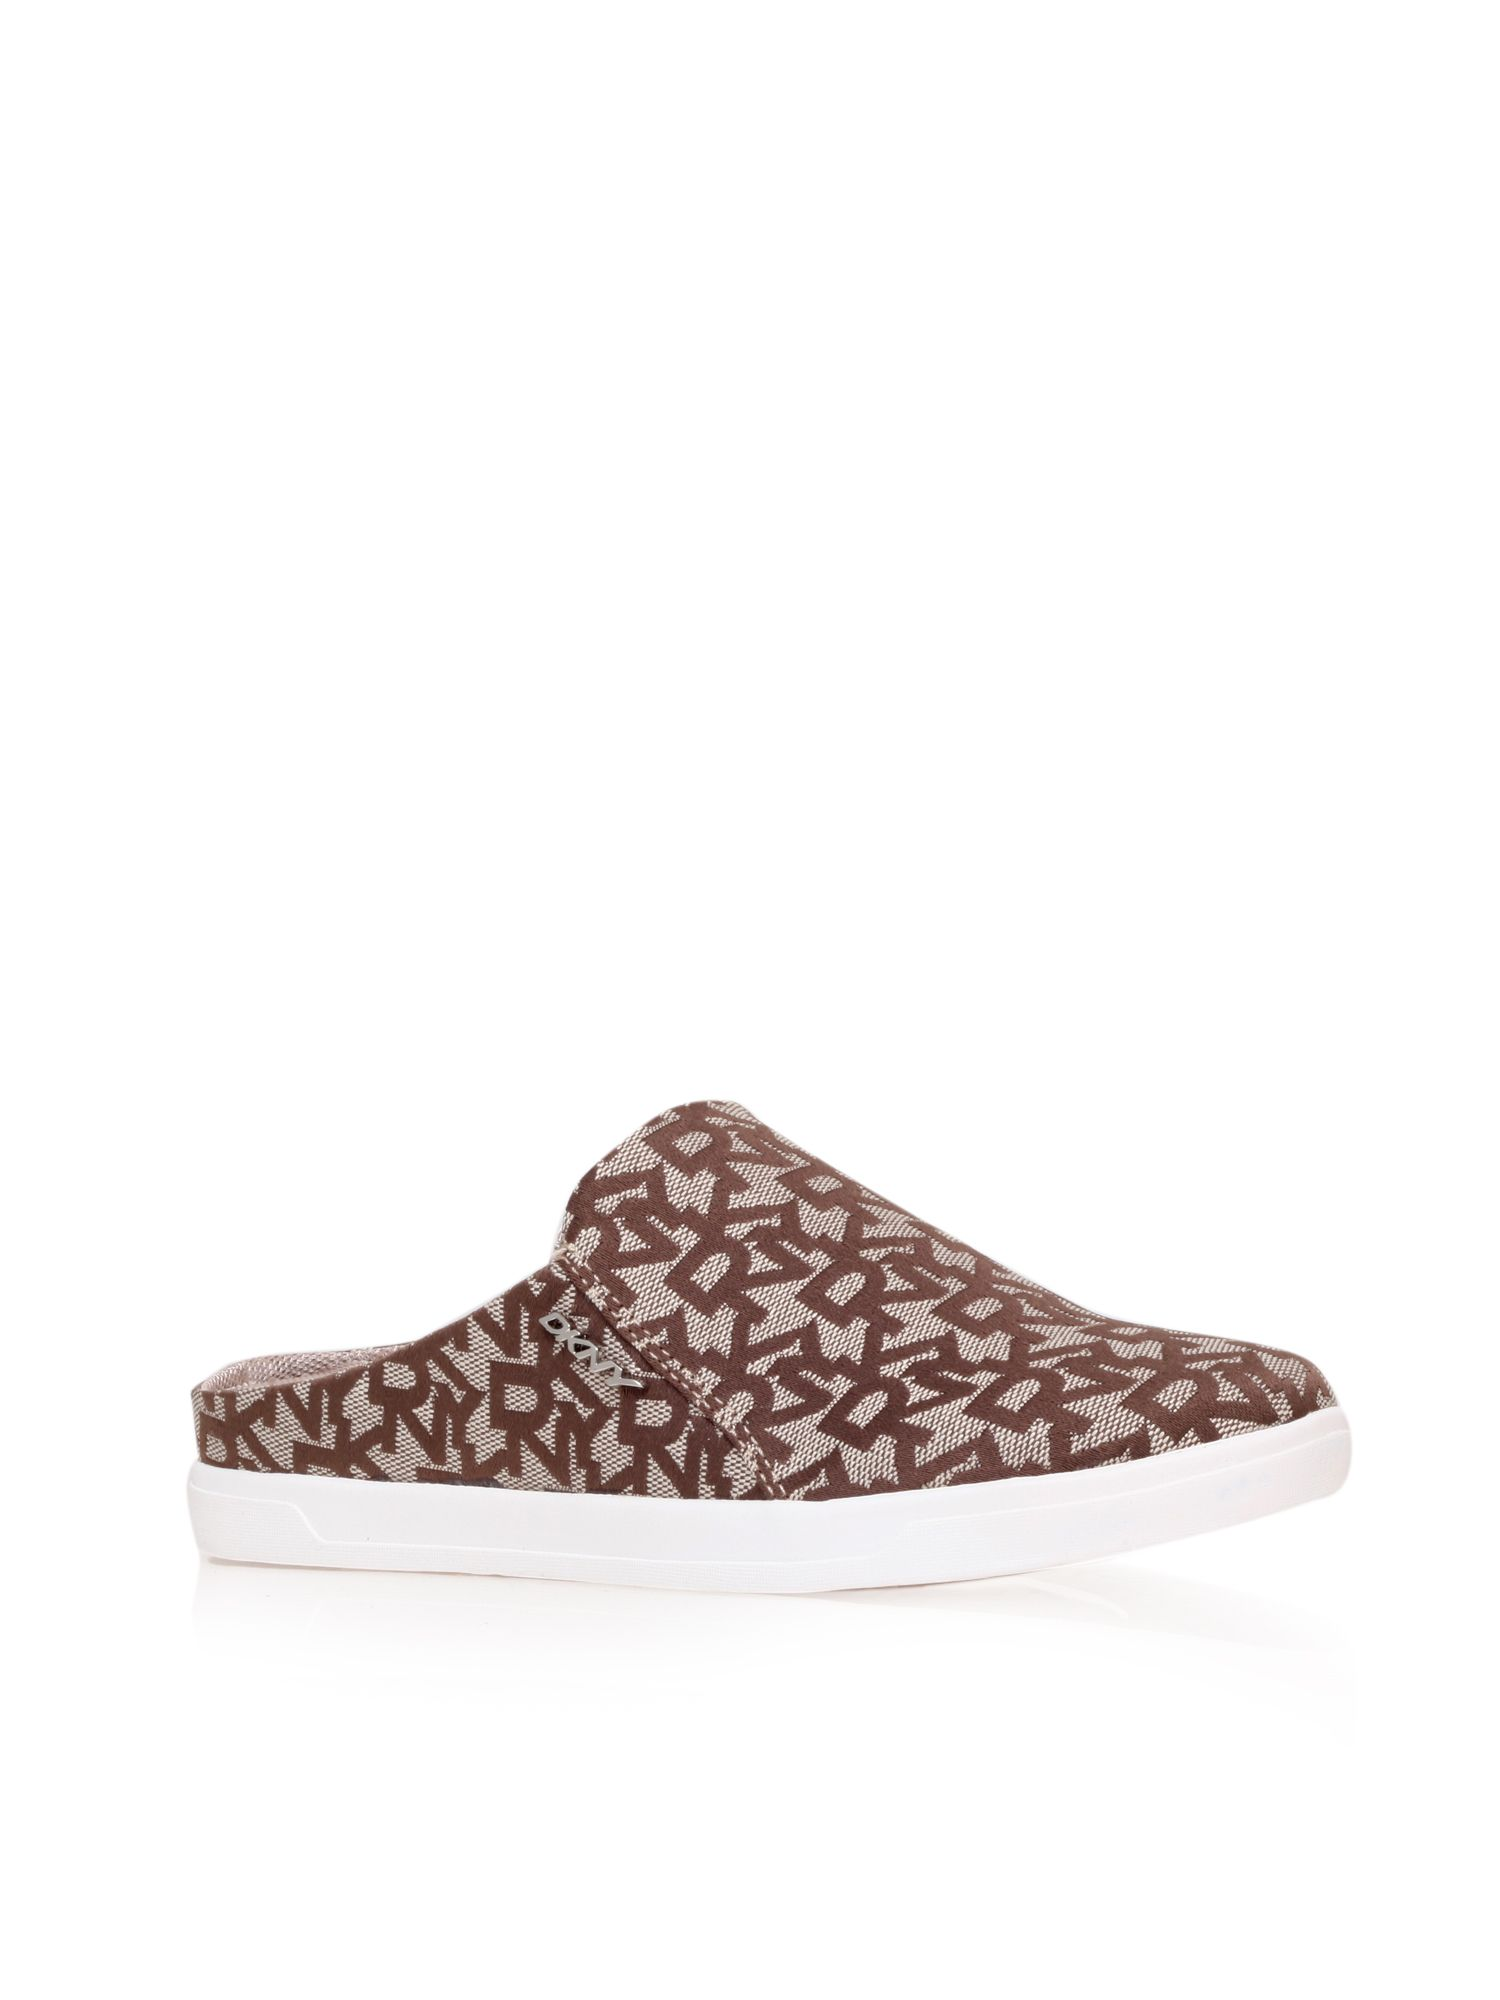 Boardwalk flat slip on shoe